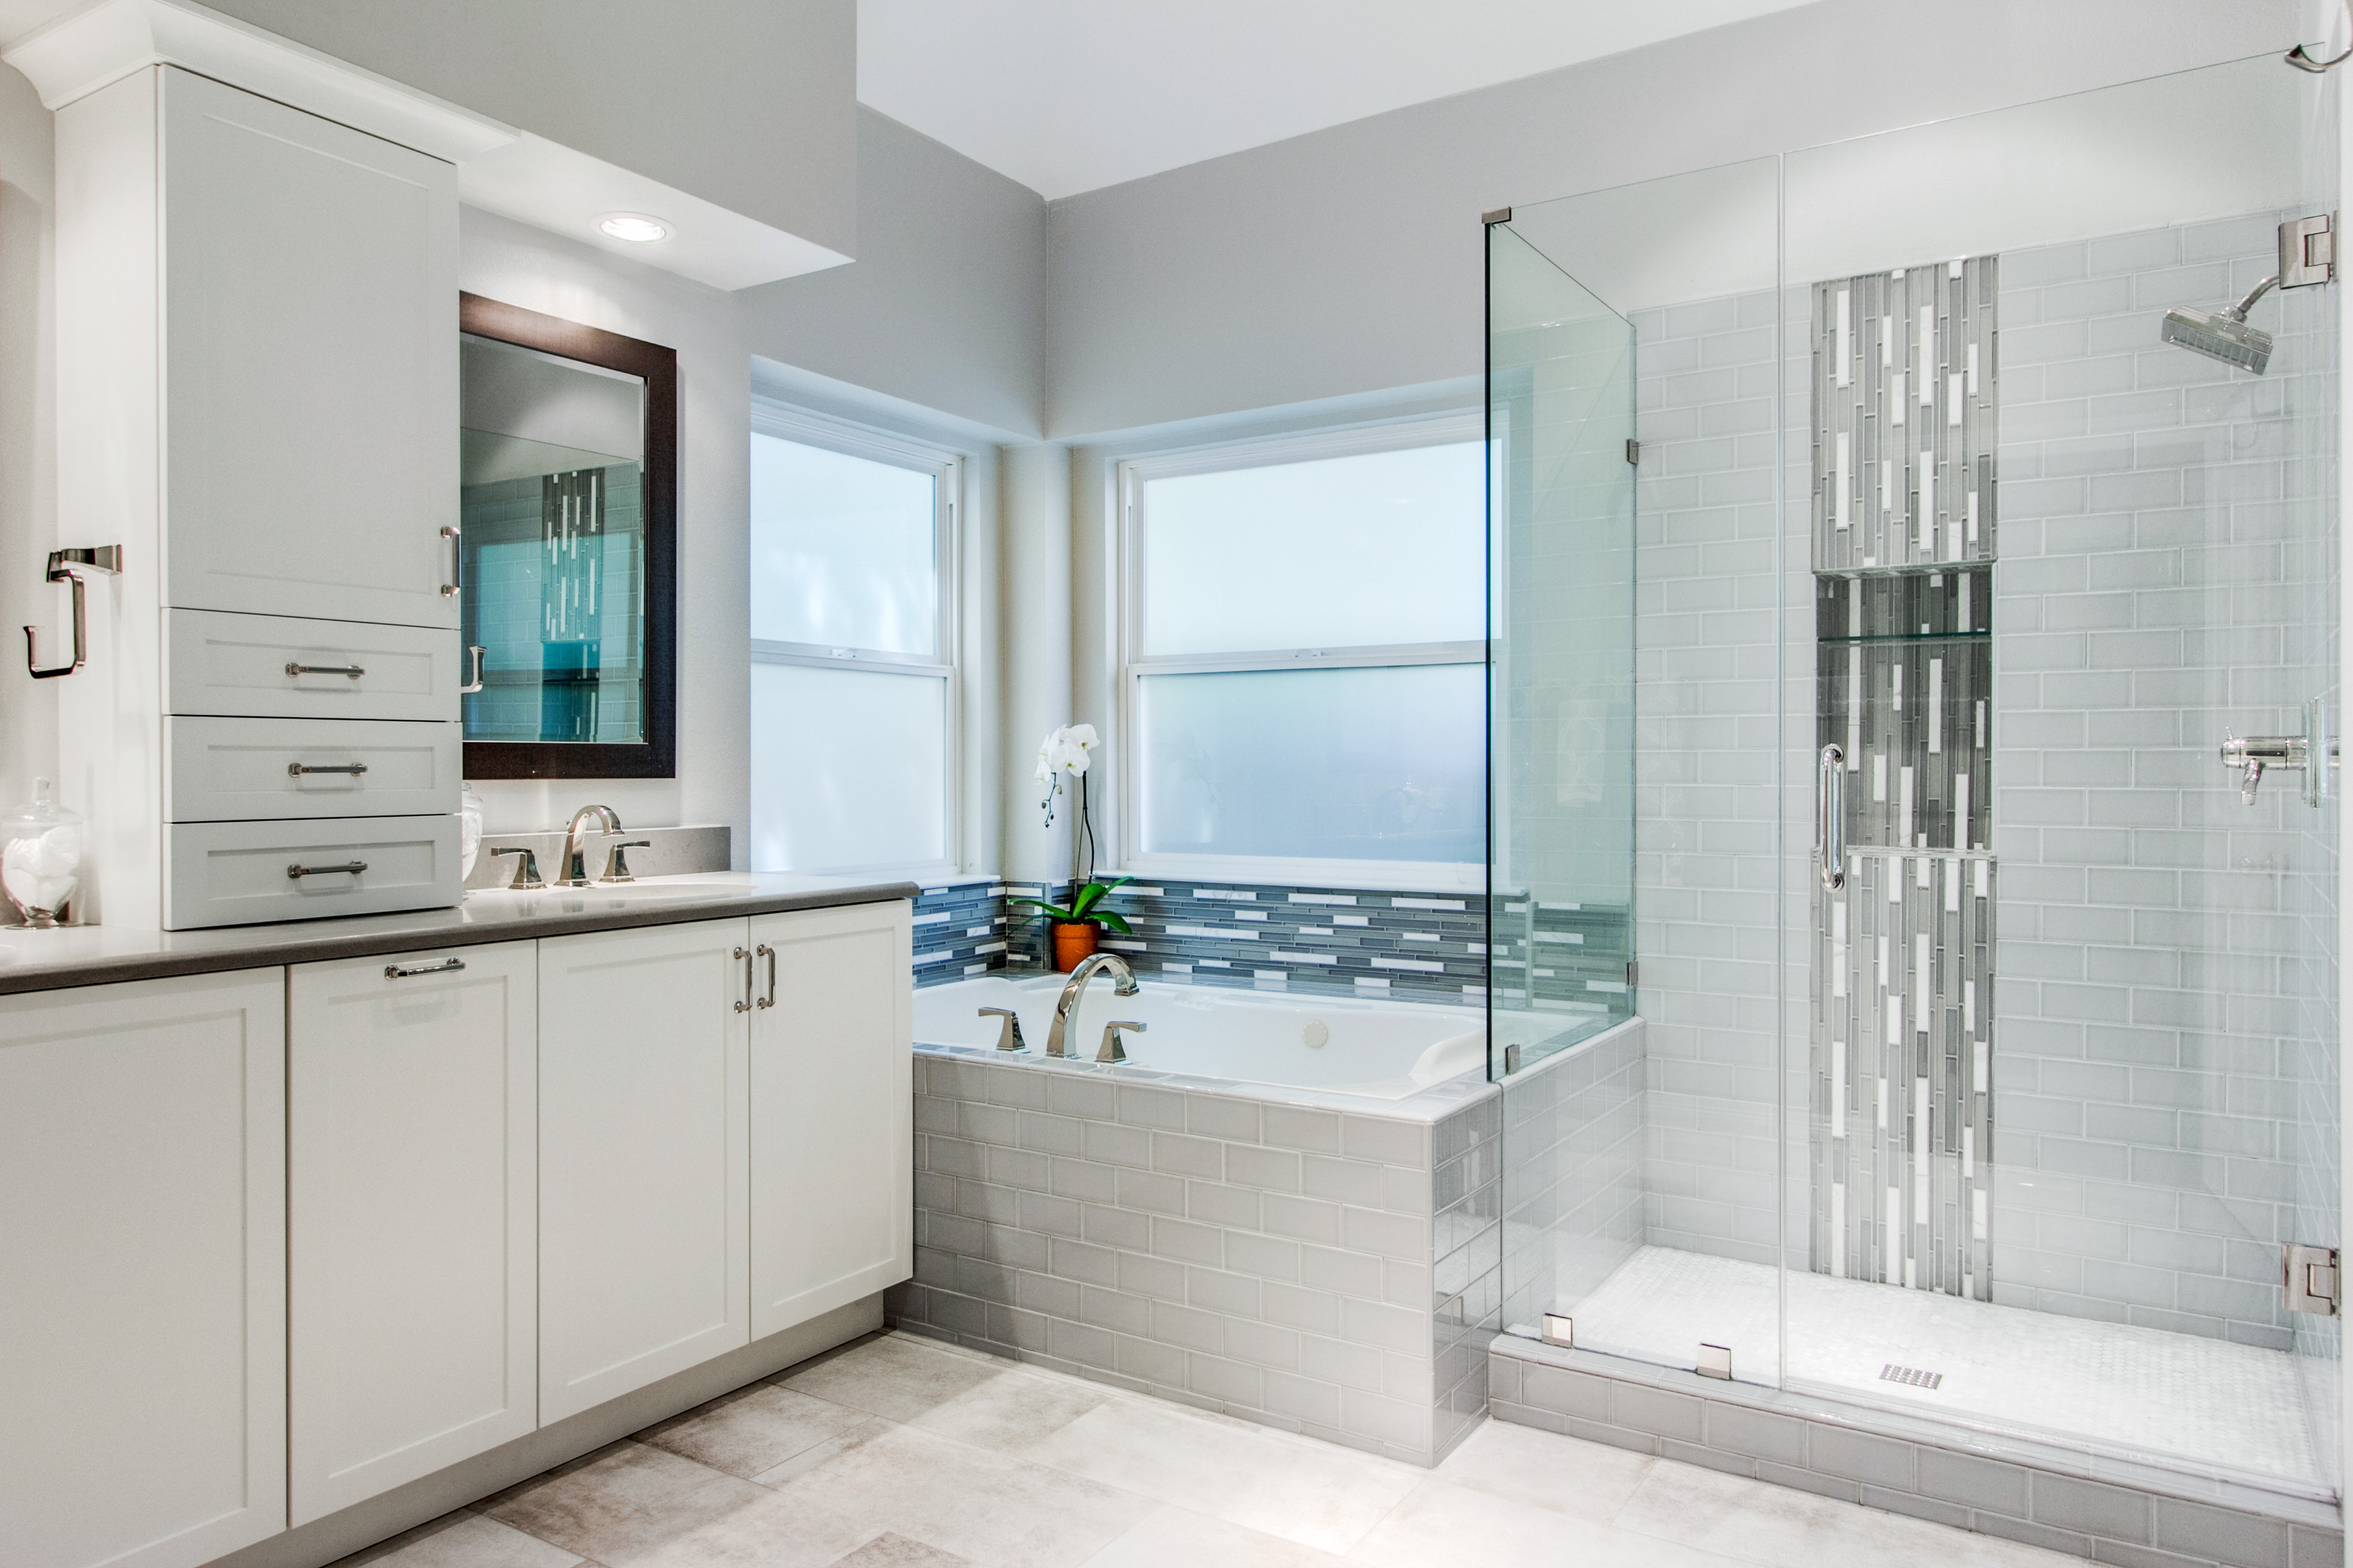 Things to Consider For Your Bathroom Remodel Part 2 | Snappy Kitchens